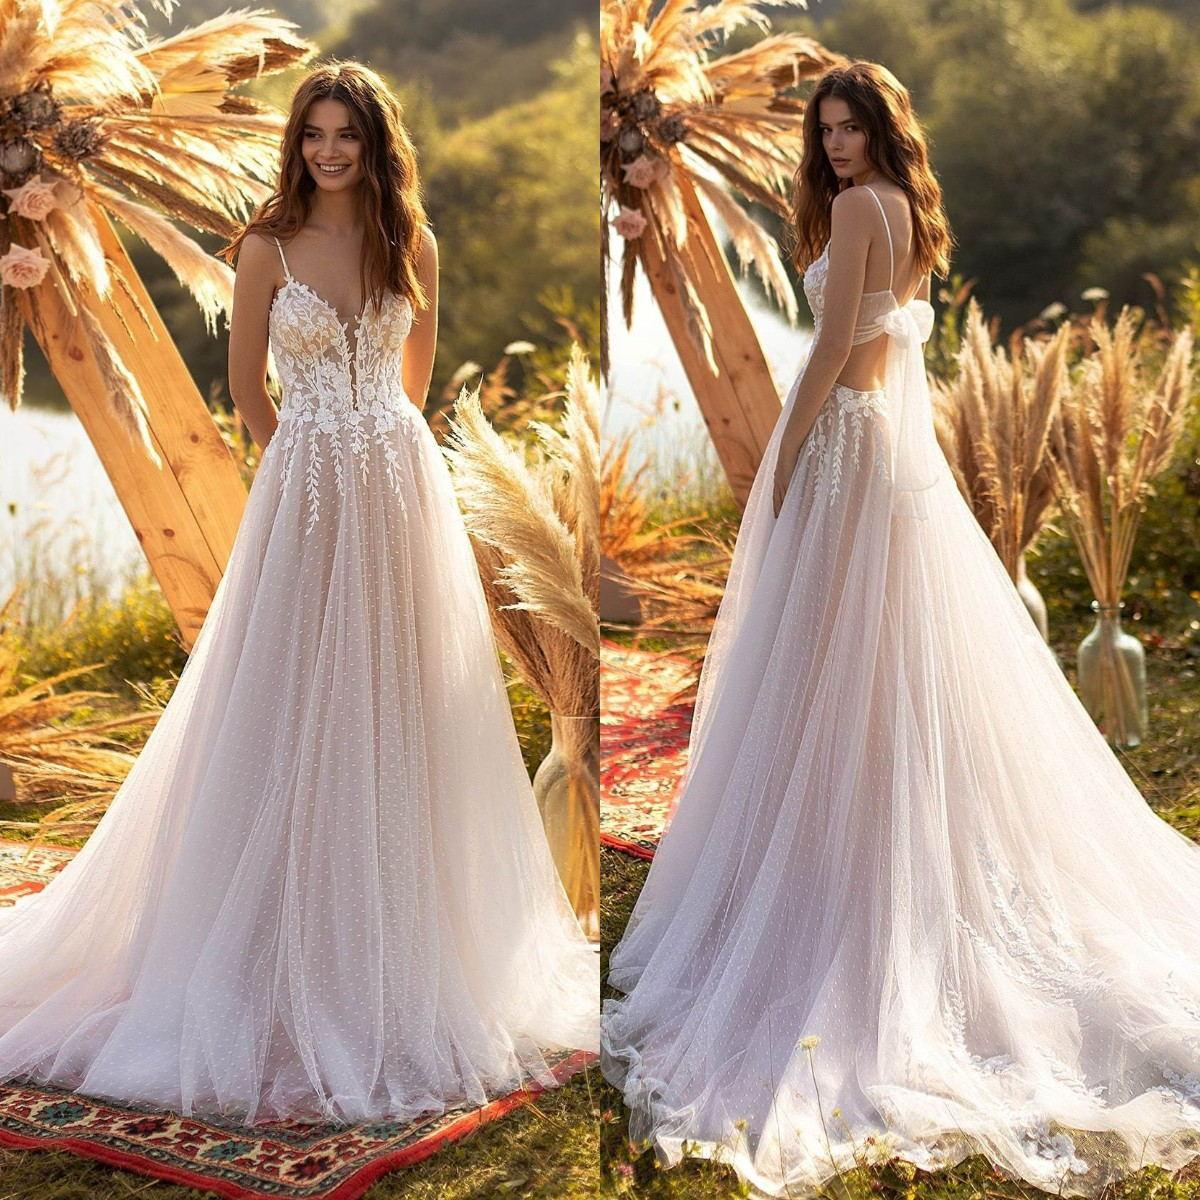 Sexy Plus Size A-Line Wedding Dresses Spaghetti Straps Lace Appliques Beach Bridal Gowns Backless Sweep Train Wedding Dress Custom